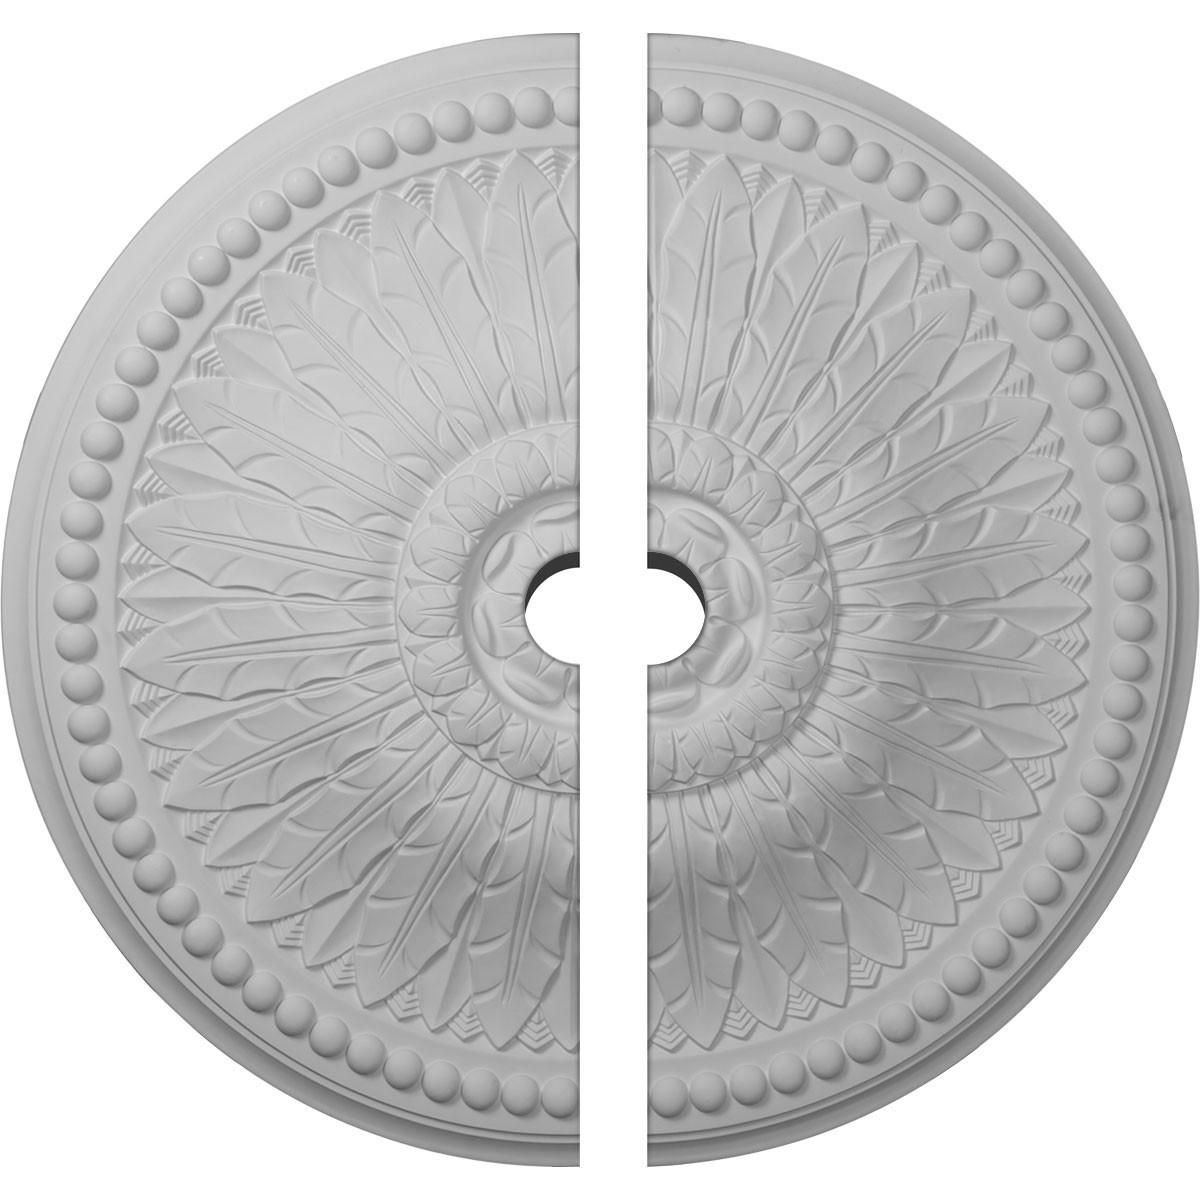 """EM-CM29SP2-03000 - 29 3/8""""OD x 3""""ID x 2 7/8""""P Springtime Ceiling Medallion, Two Piece (Fits Canopies up to 3"""")"""